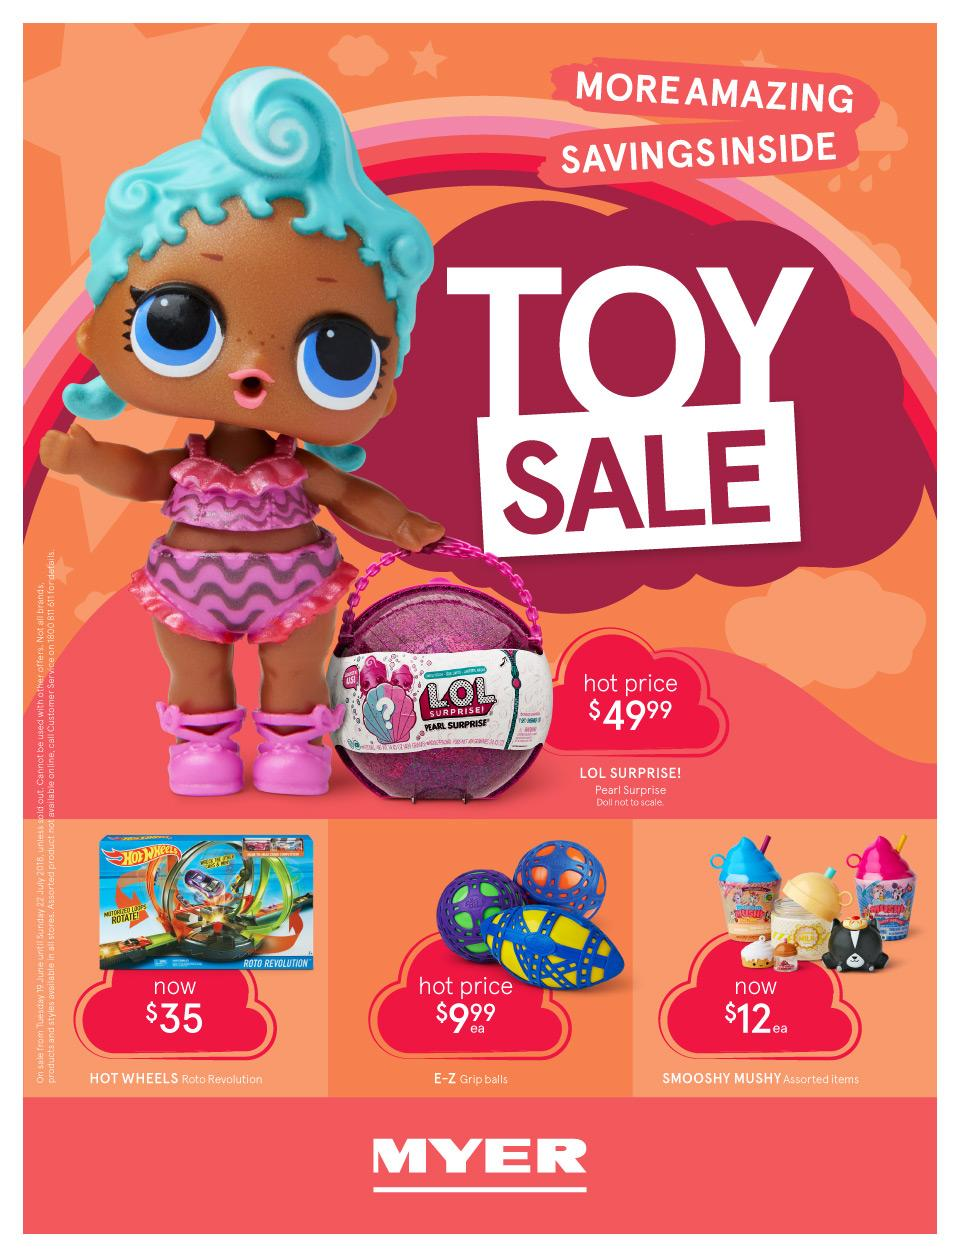 myer catalogue toy sale june 2018